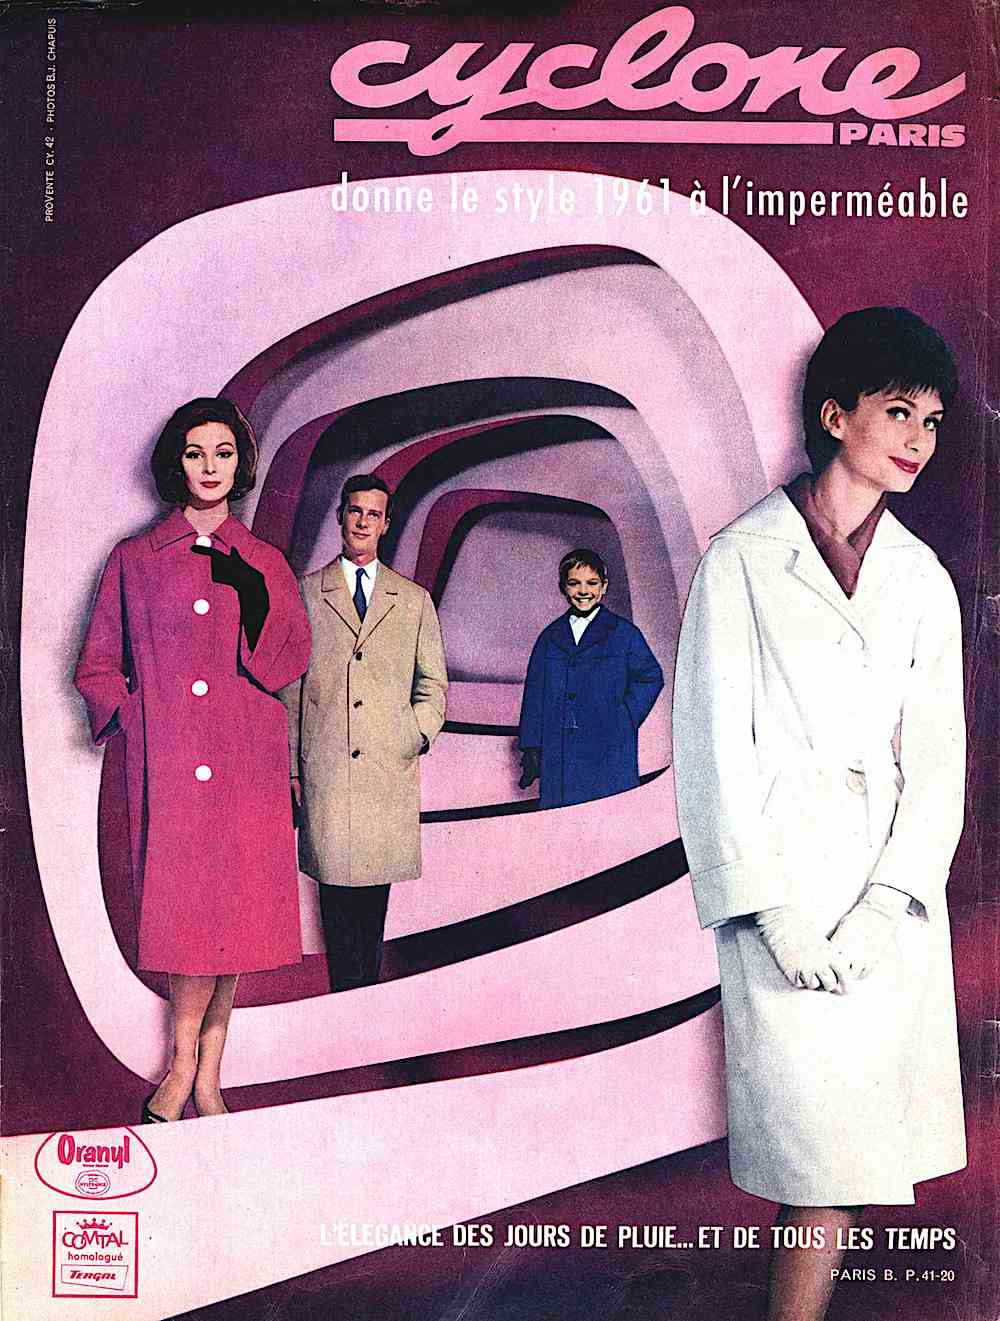 A 1961 Cyclone ad photograph in color for Oranyl & Comtal, Paris